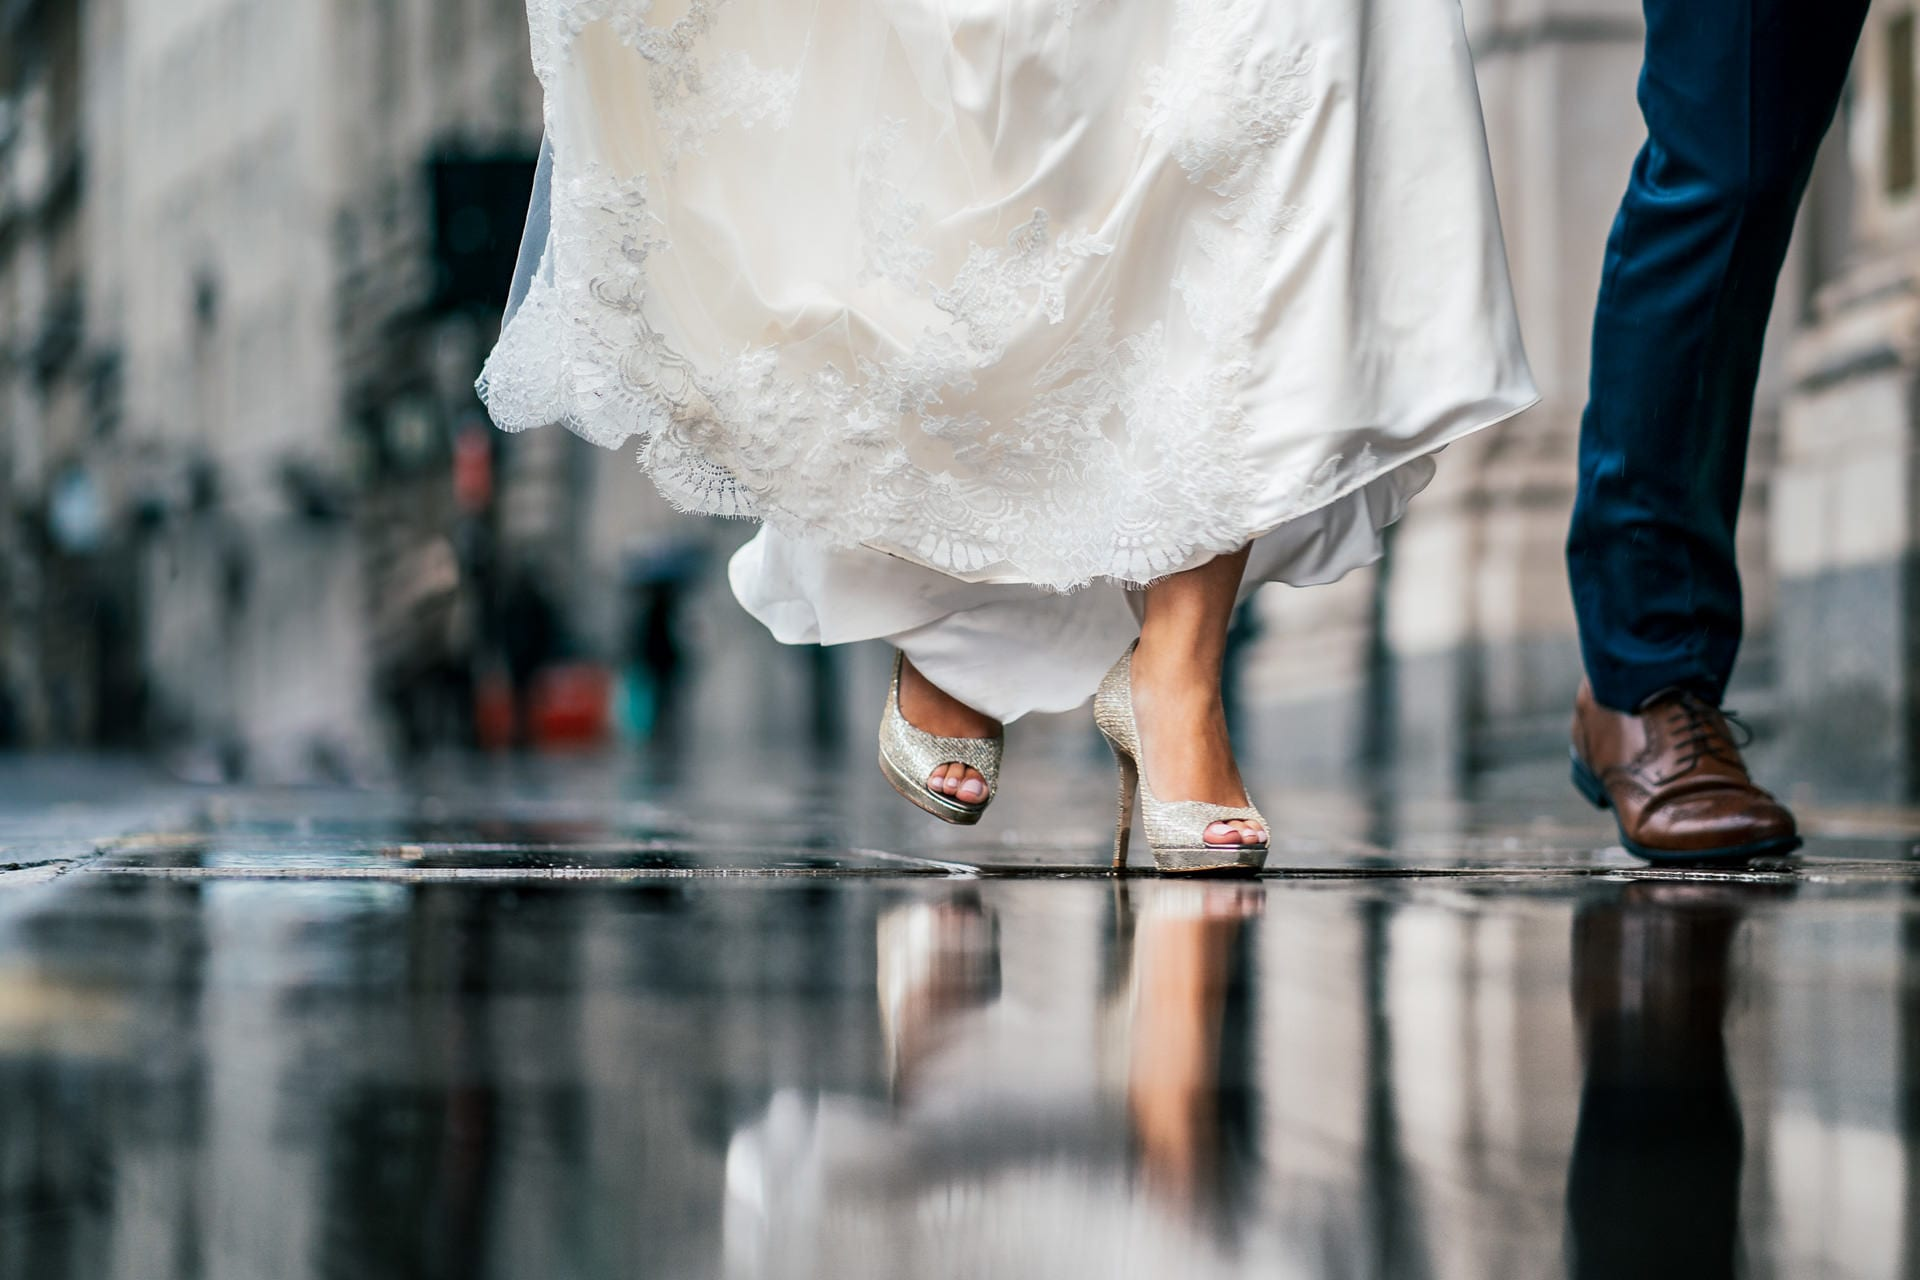 Bride's wedding shoes on rainy streets at a wedding at 1 Lombard Street in London